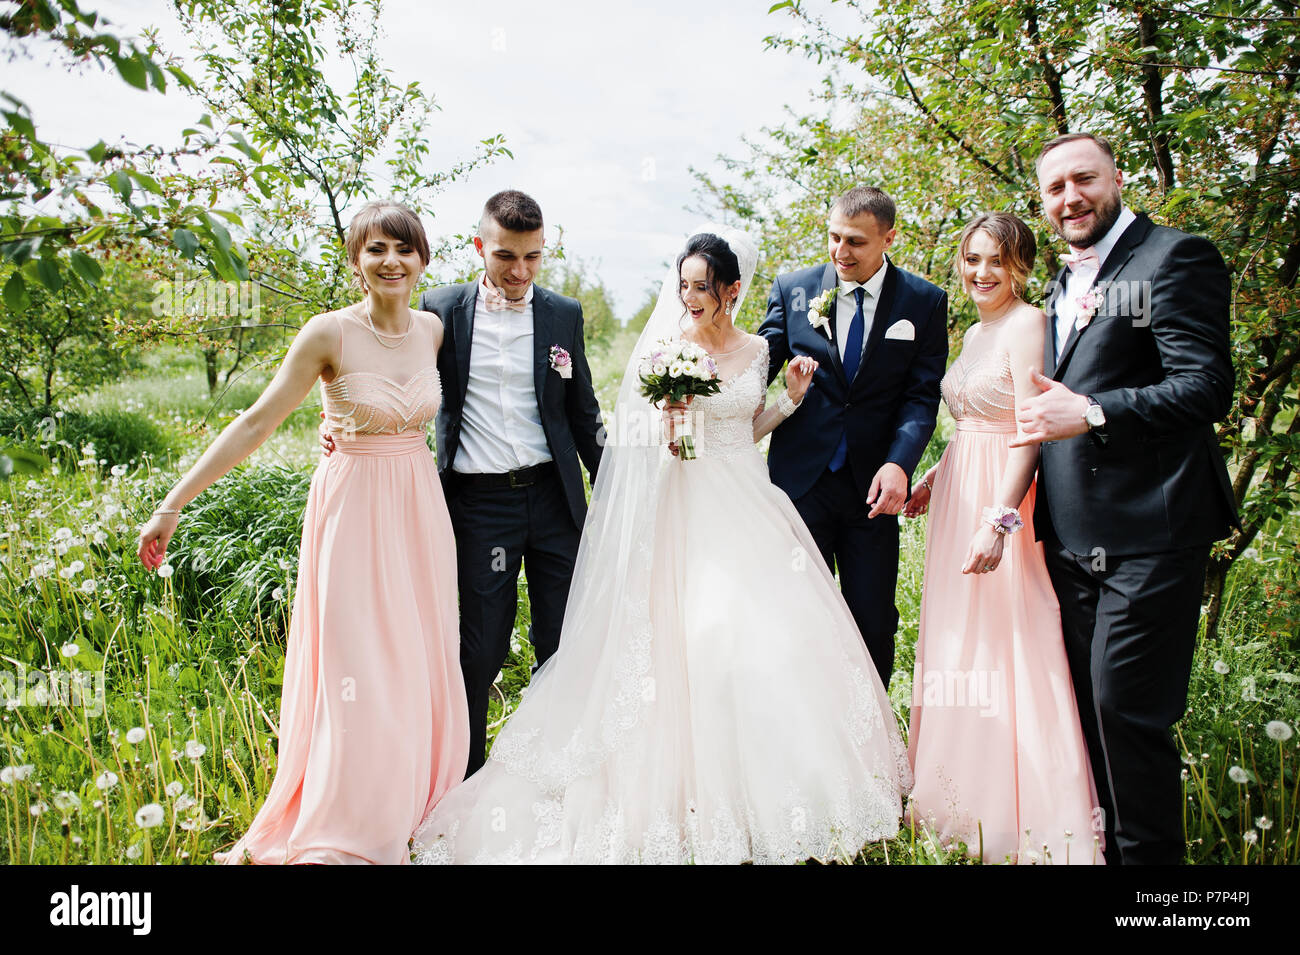 Groomsmen With Bridesmaids And Wedding Couple Posing In The Garden Outdoors Stock Photo Alamy